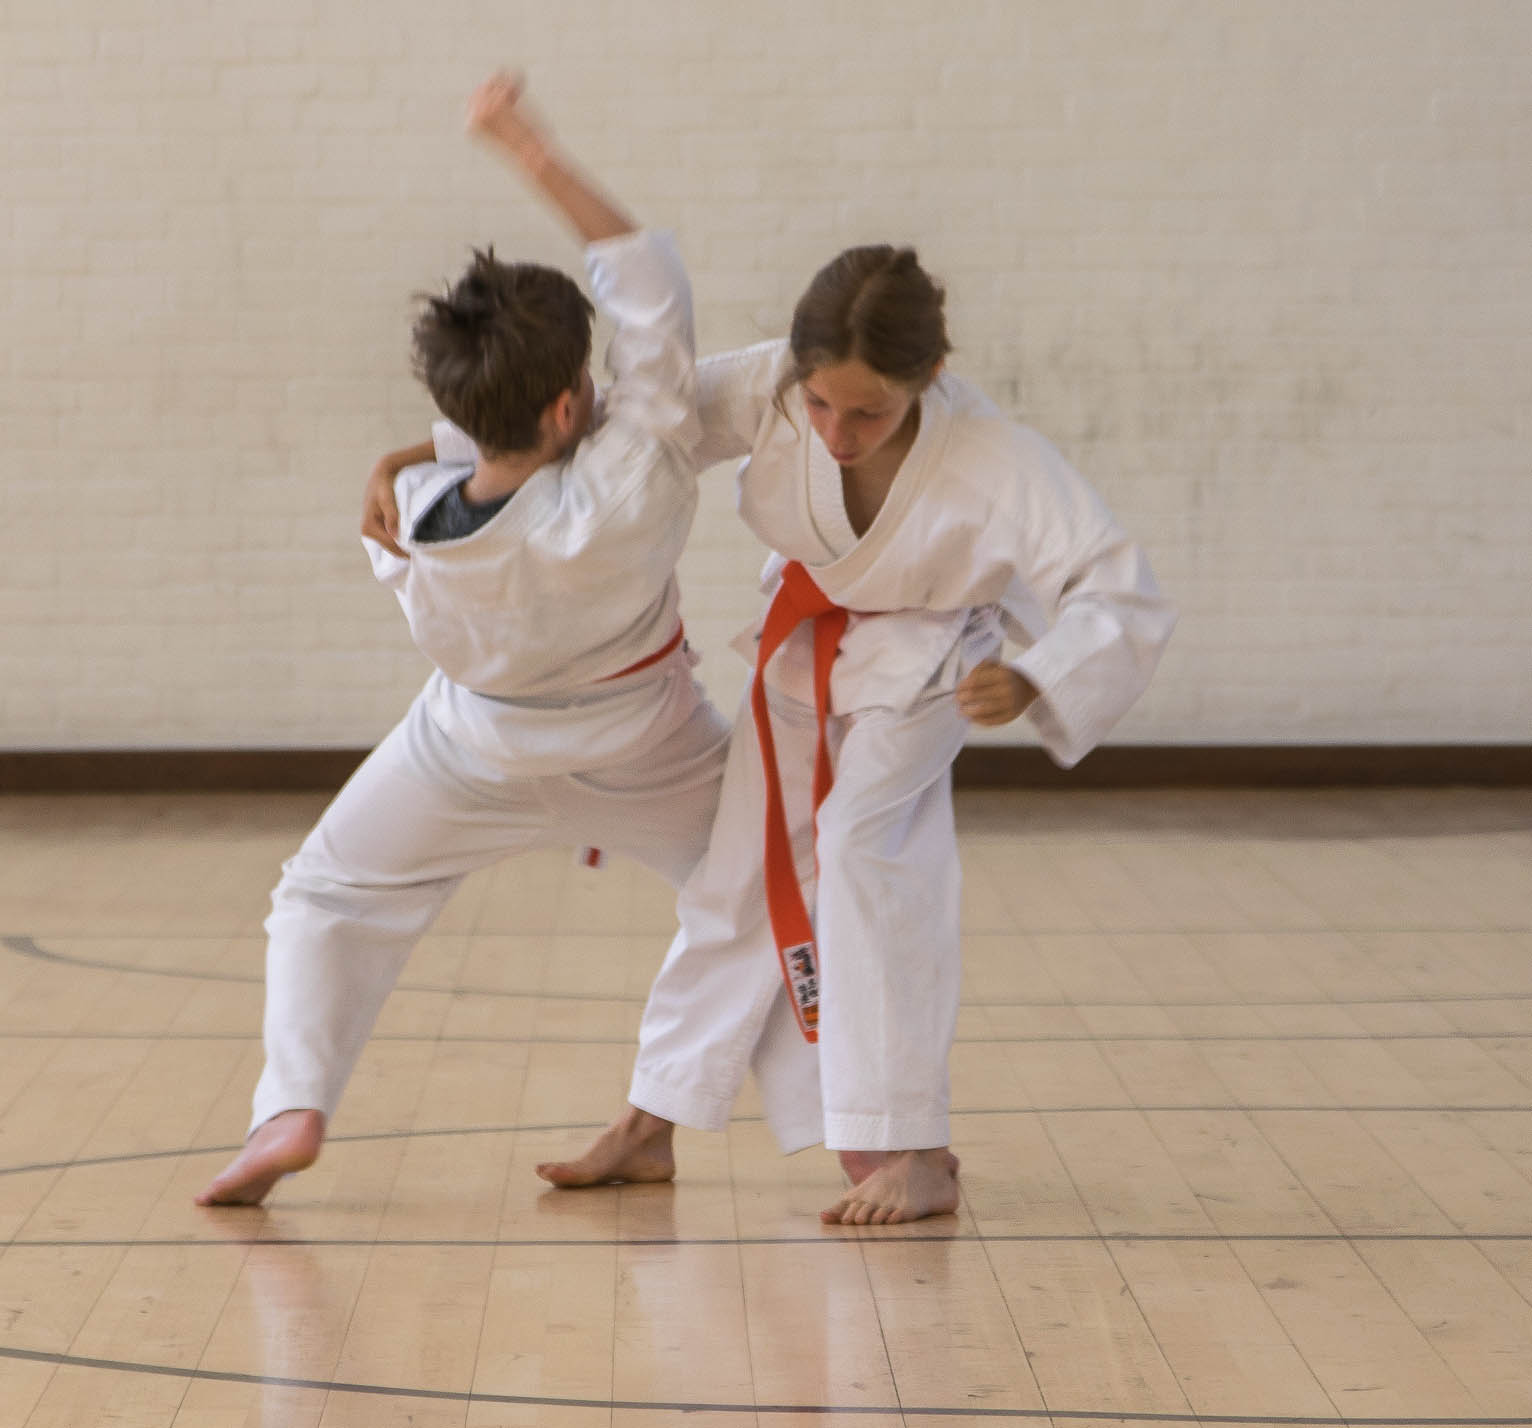 ladies-karate About Our Club